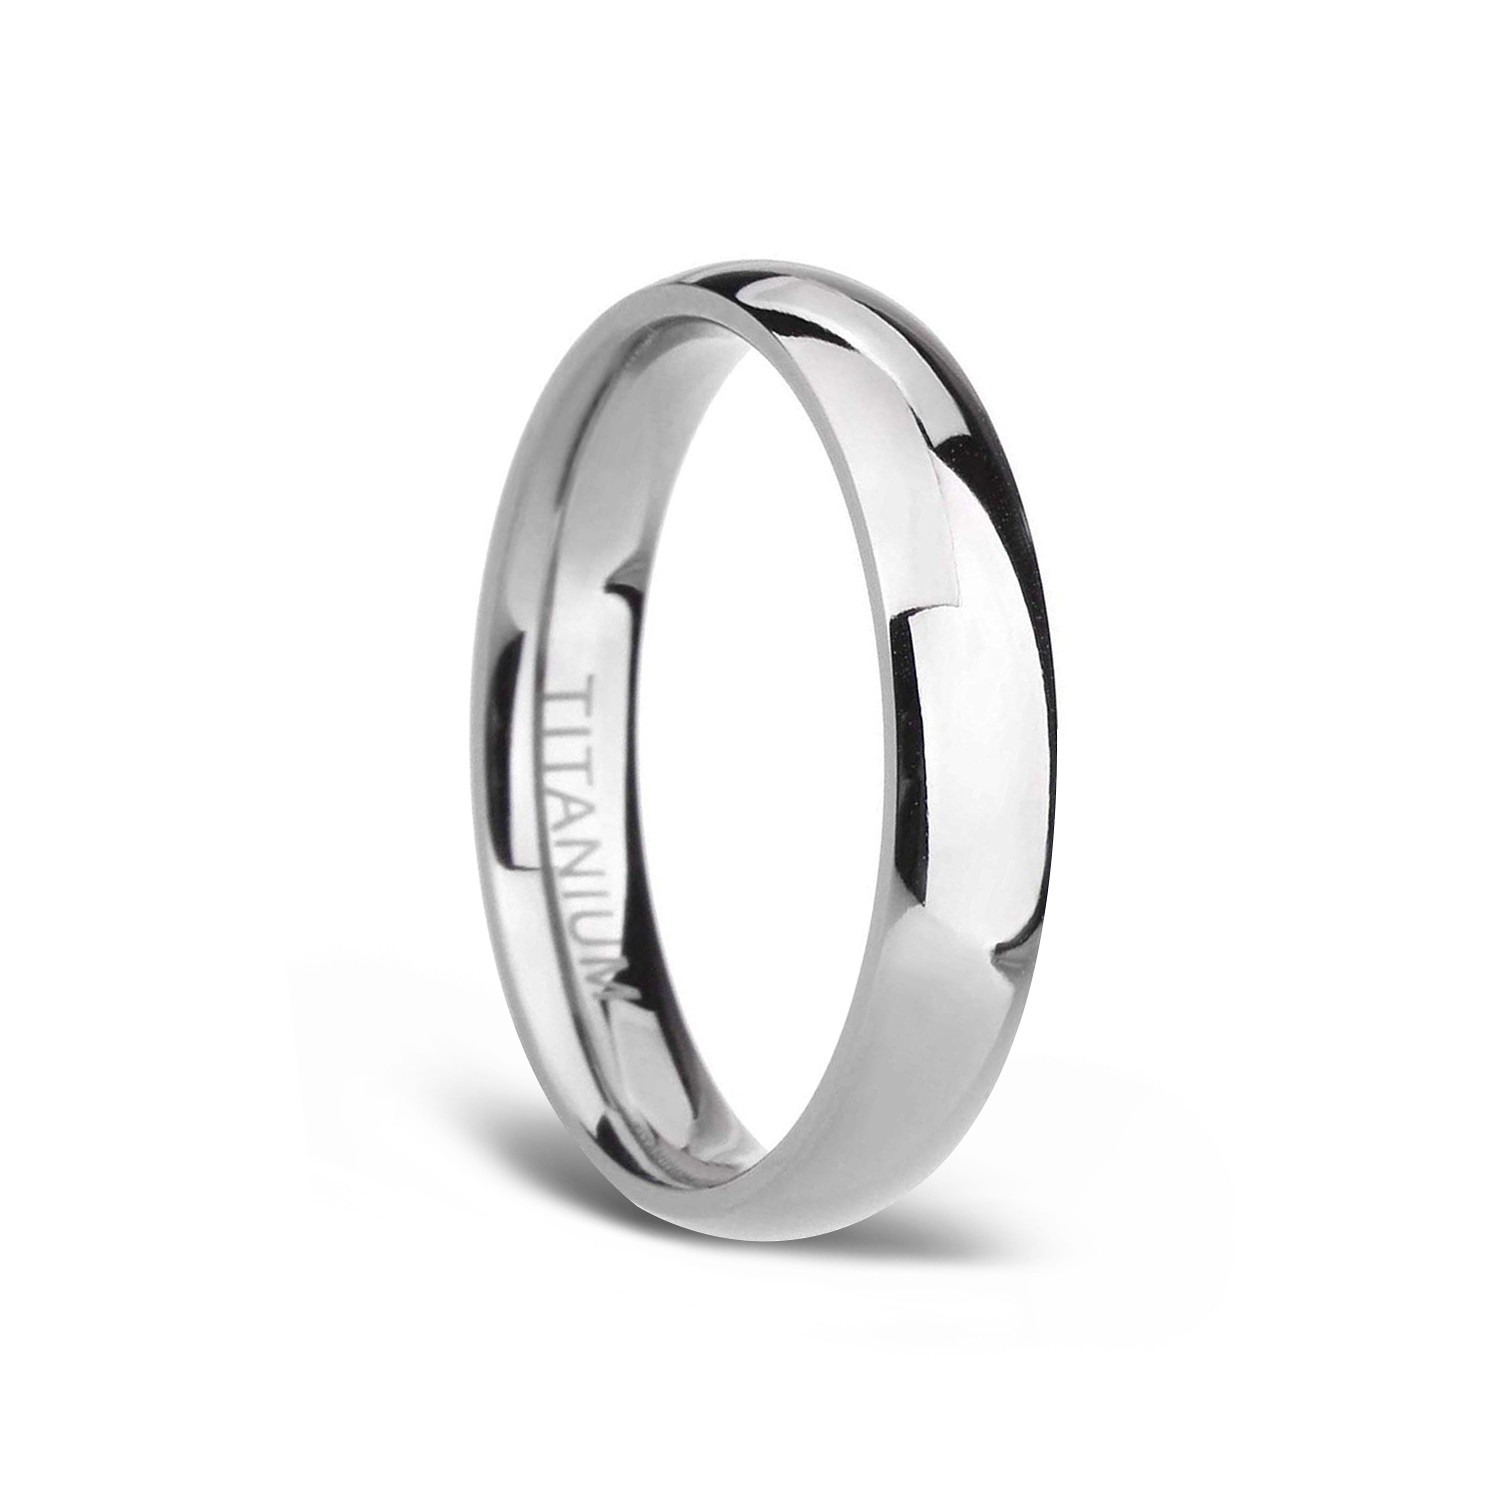 Wedding Bands Classic Bands Domed Bands Titanium 4mm Brushed Band Size 12